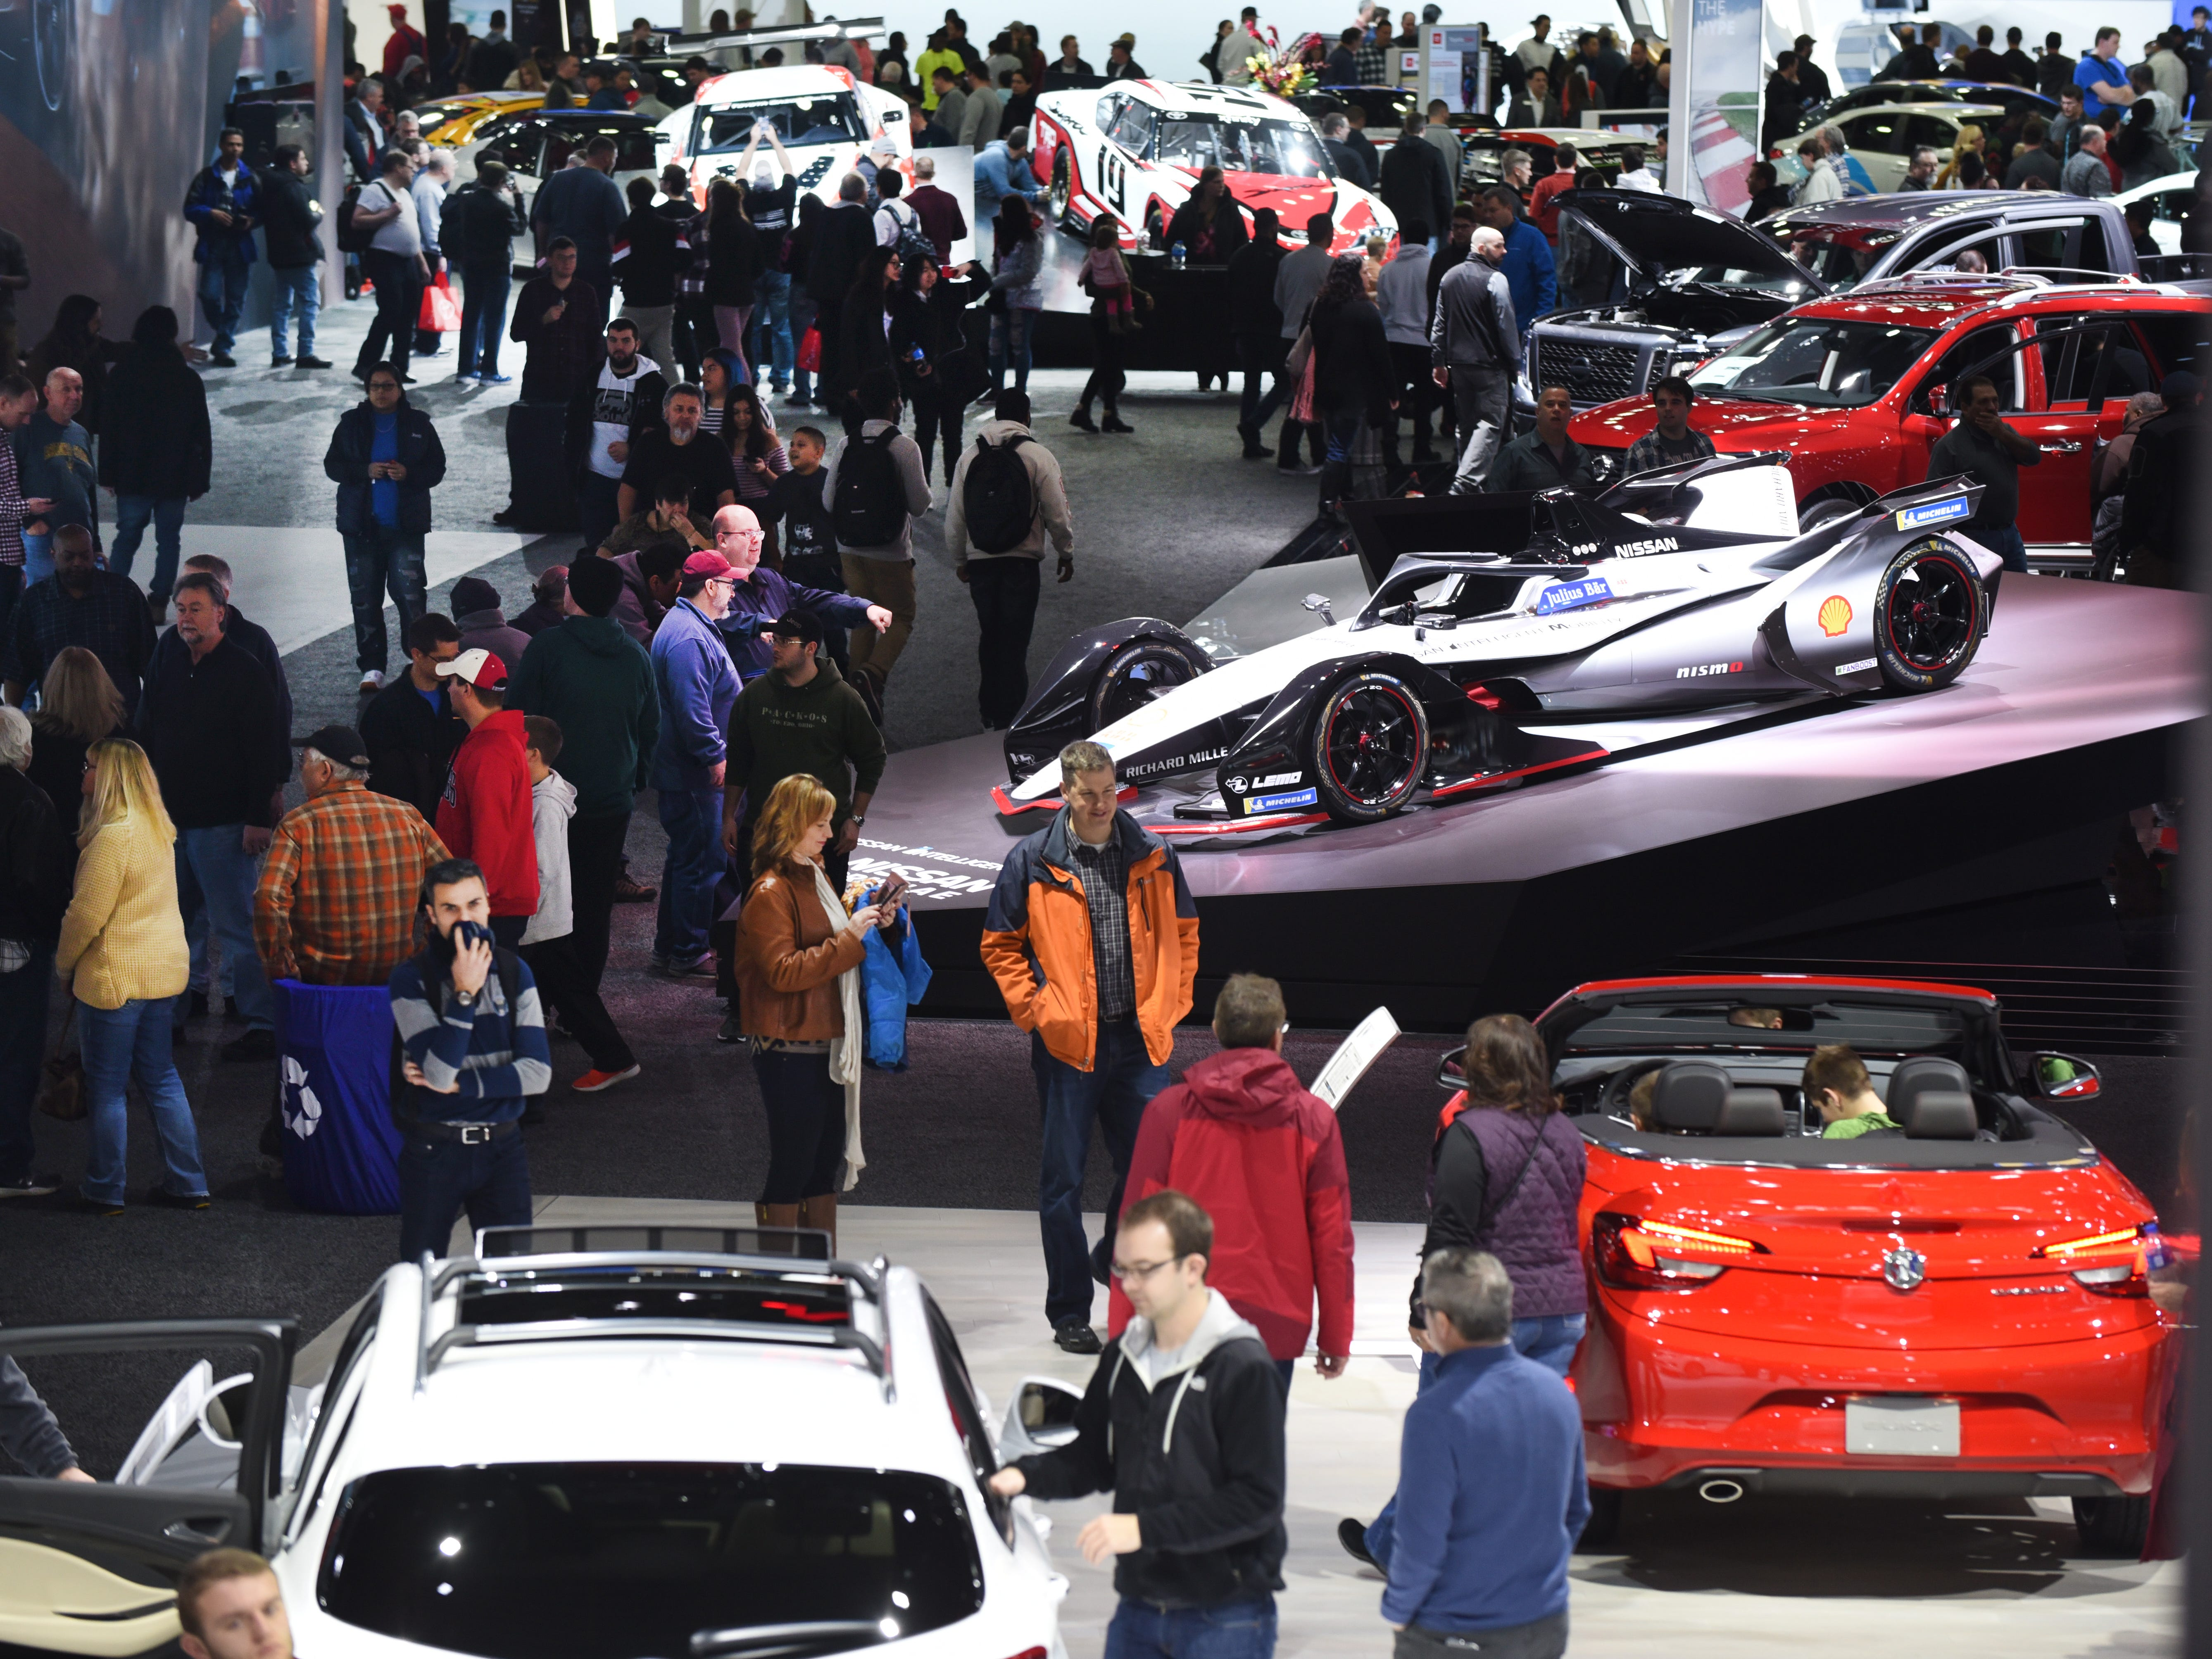 Crowds of people walk through displays at Cobo Center for the 2019 North American International Auto Show on Saturday, January 19, 2019.